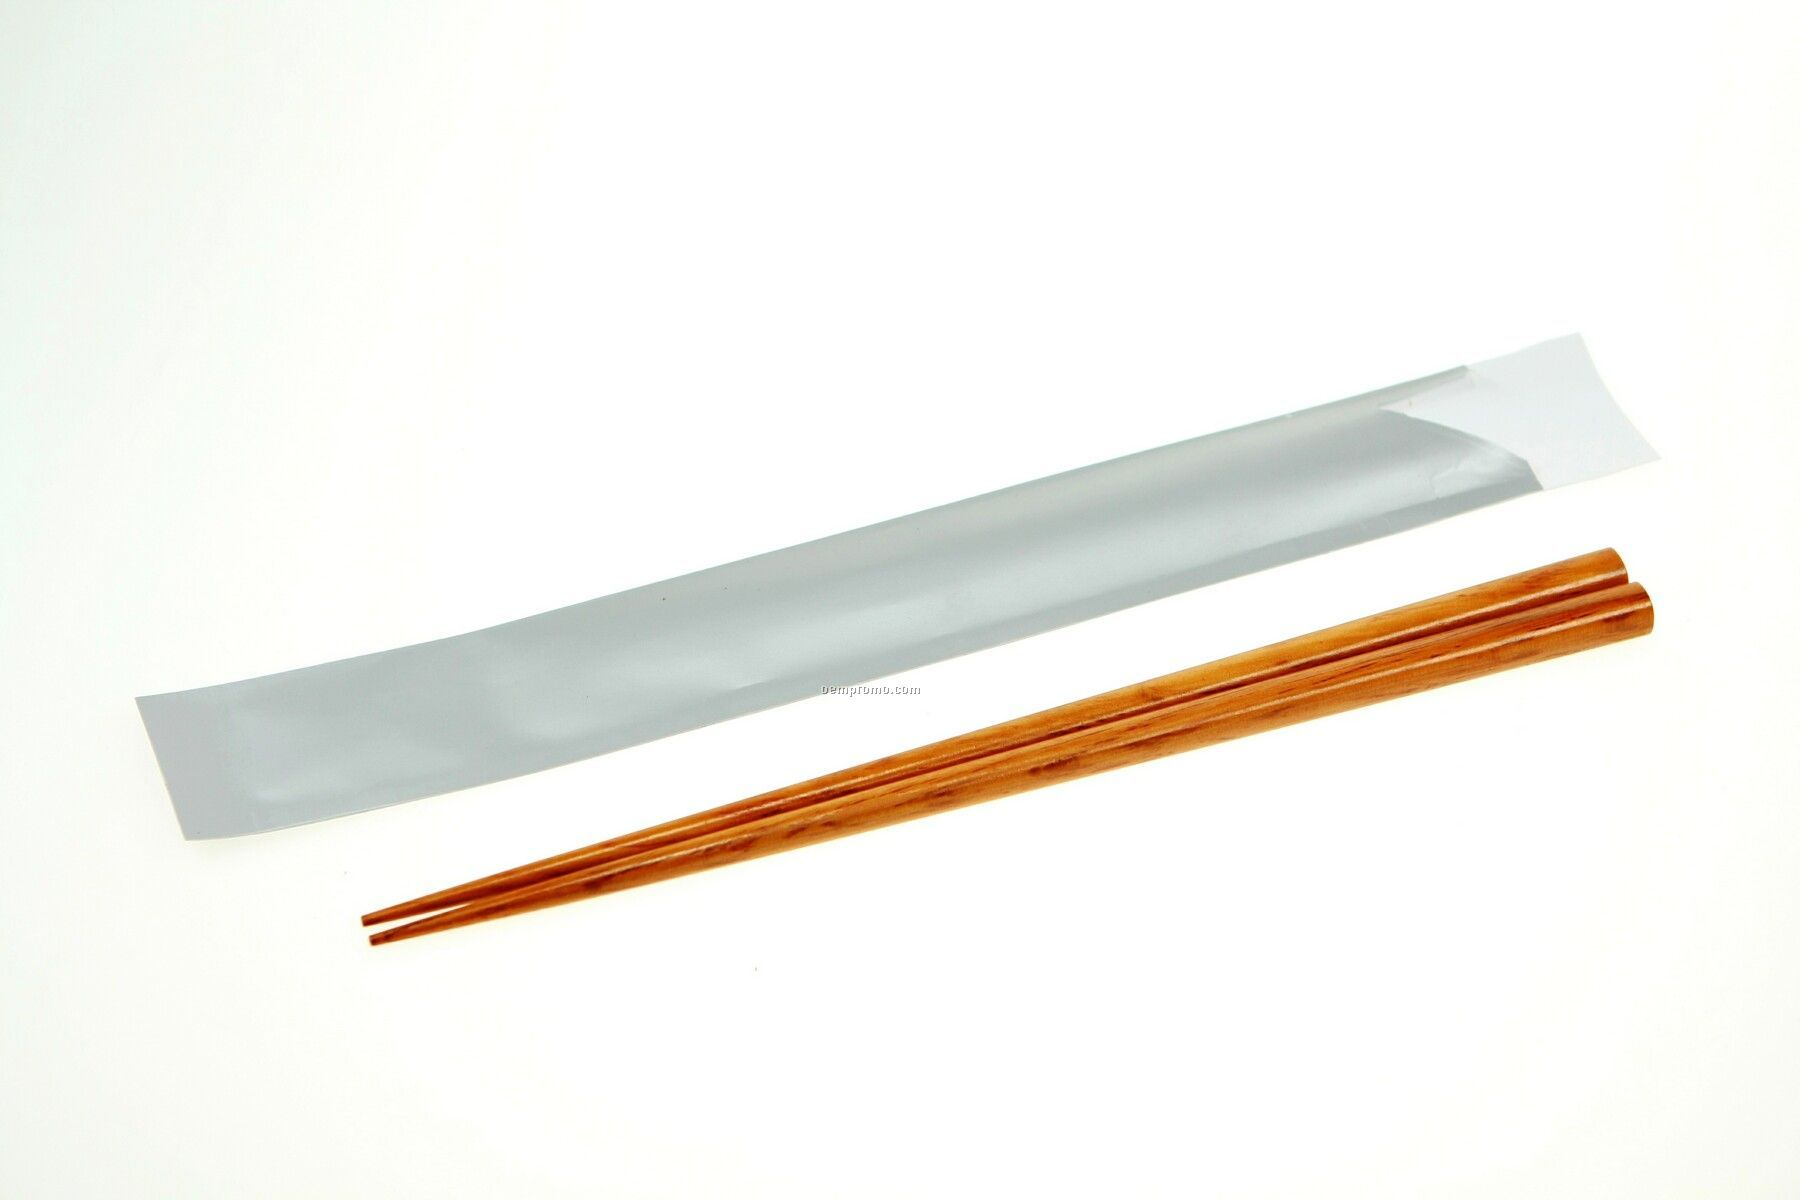 Wooden Brown Chopsticks In Silver Paper Pouch